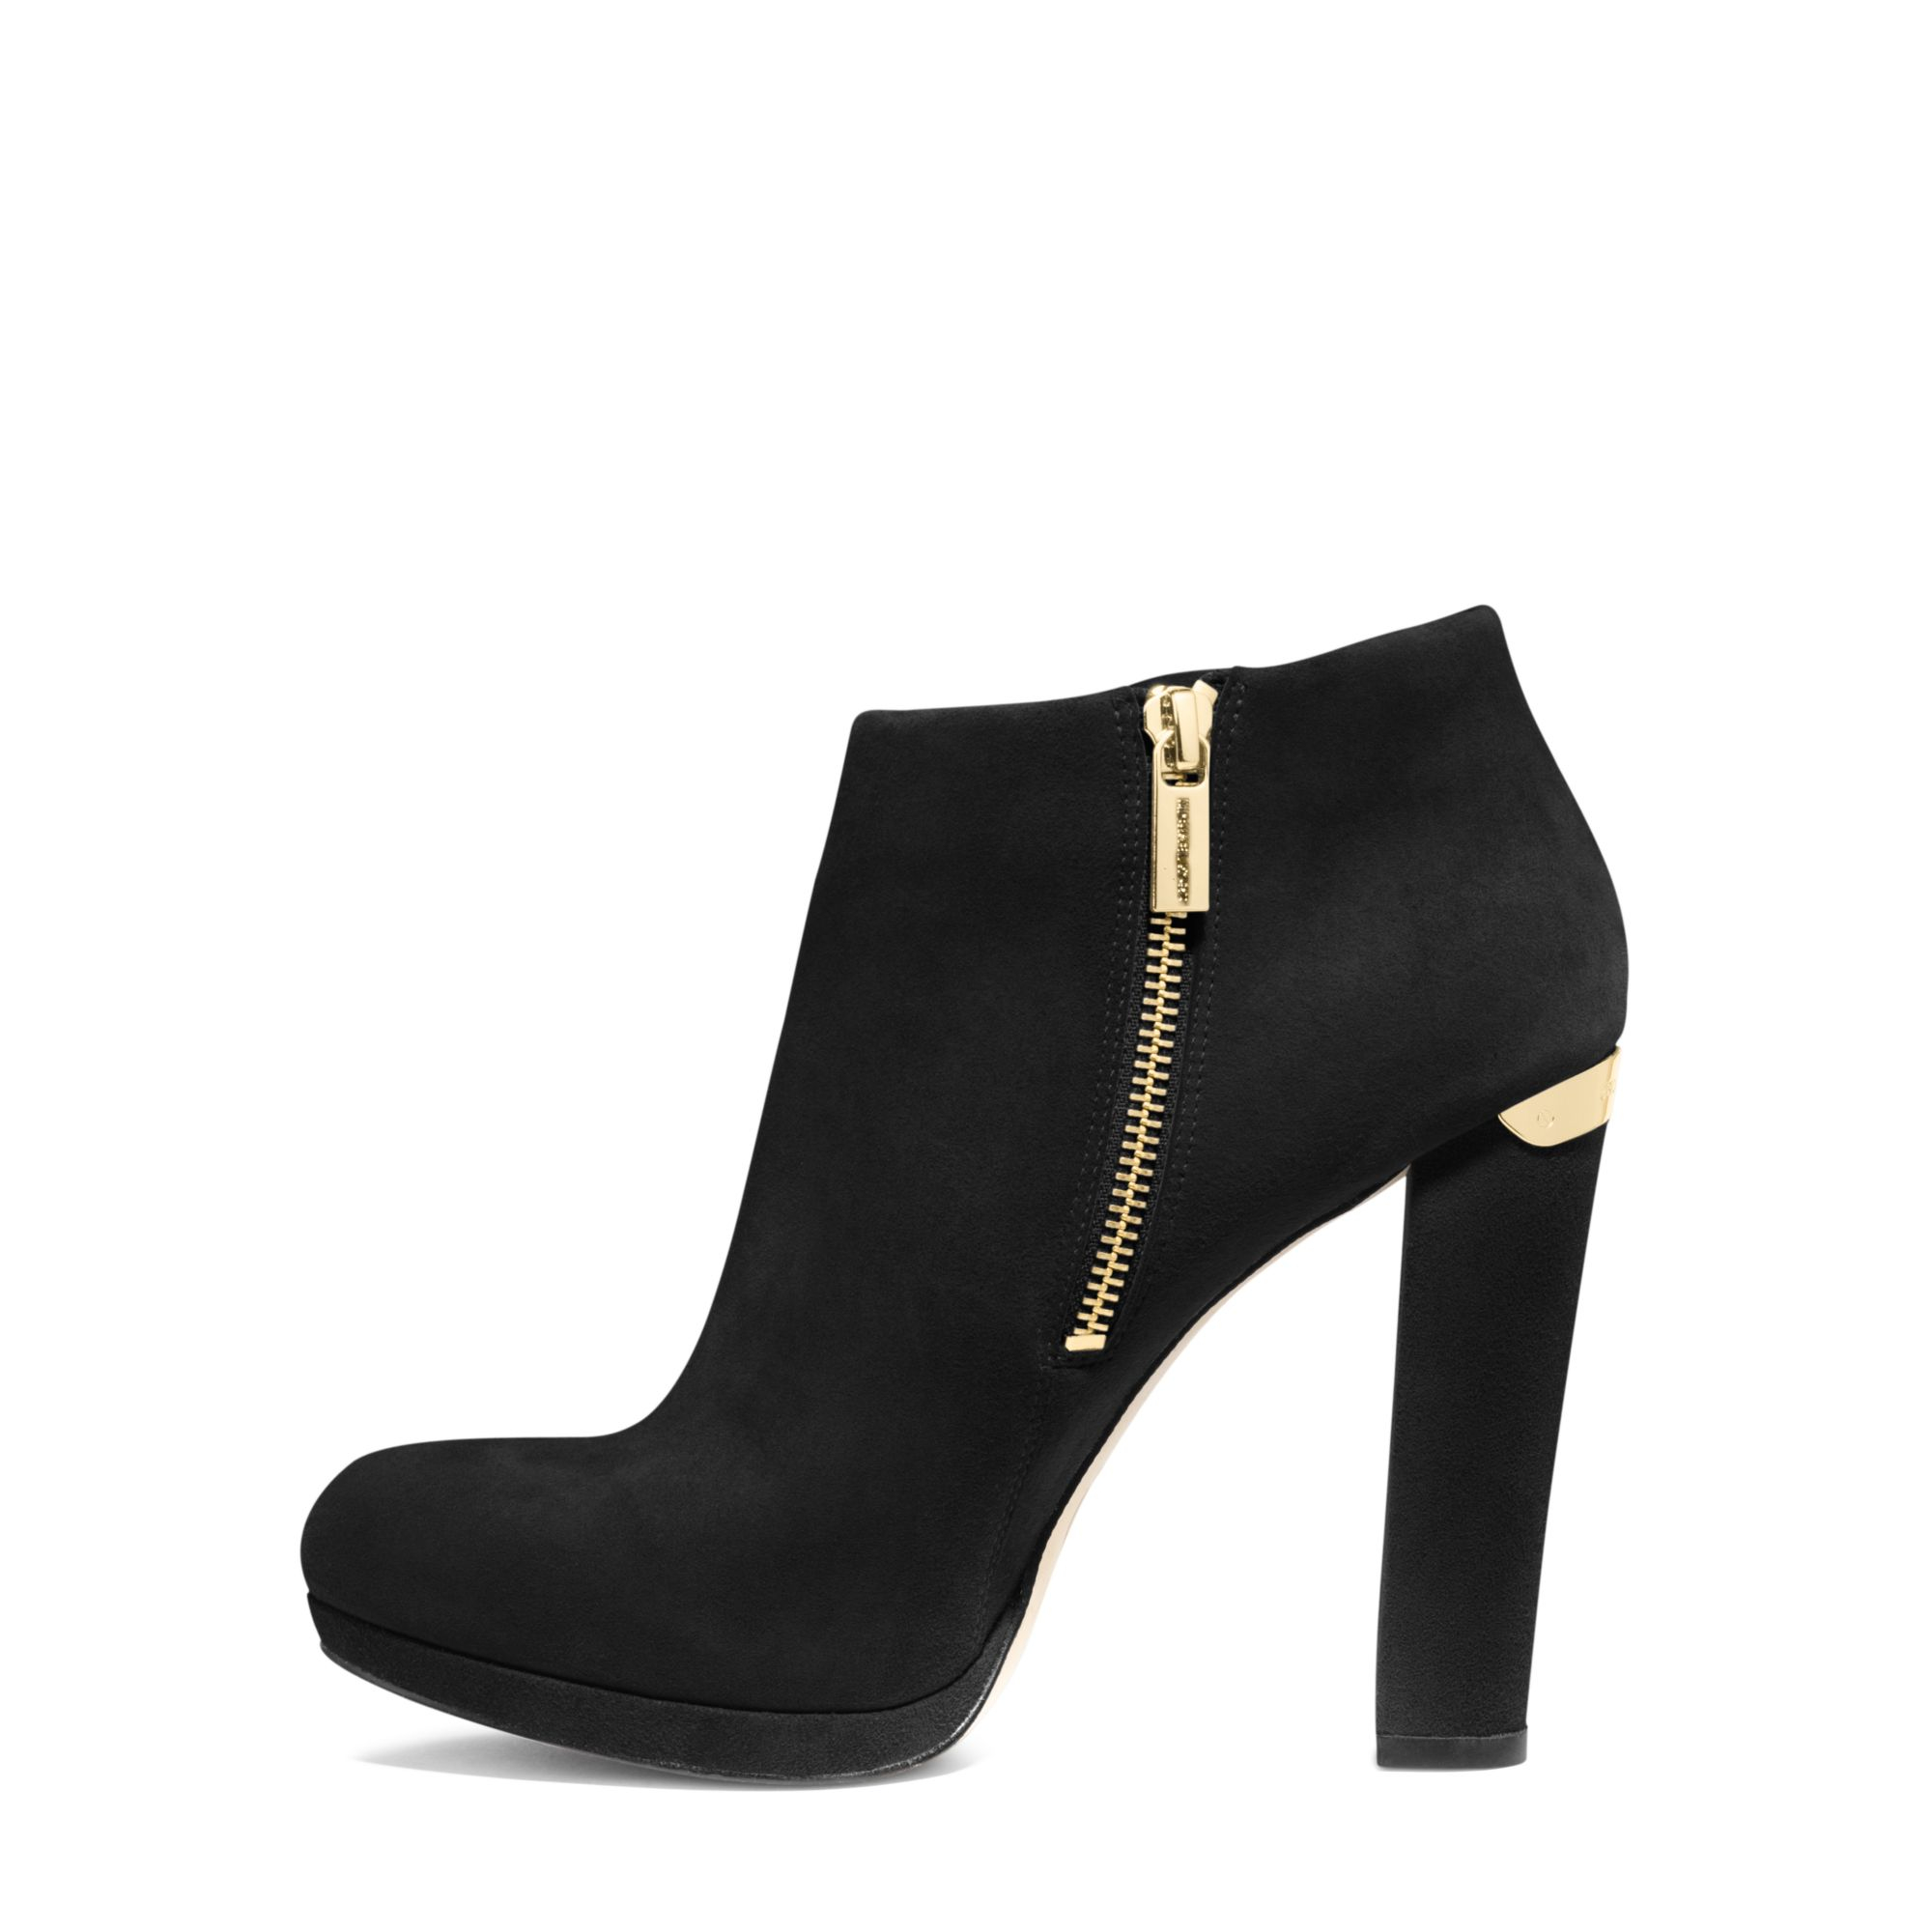 michael kors suede ankle boot in black lyst